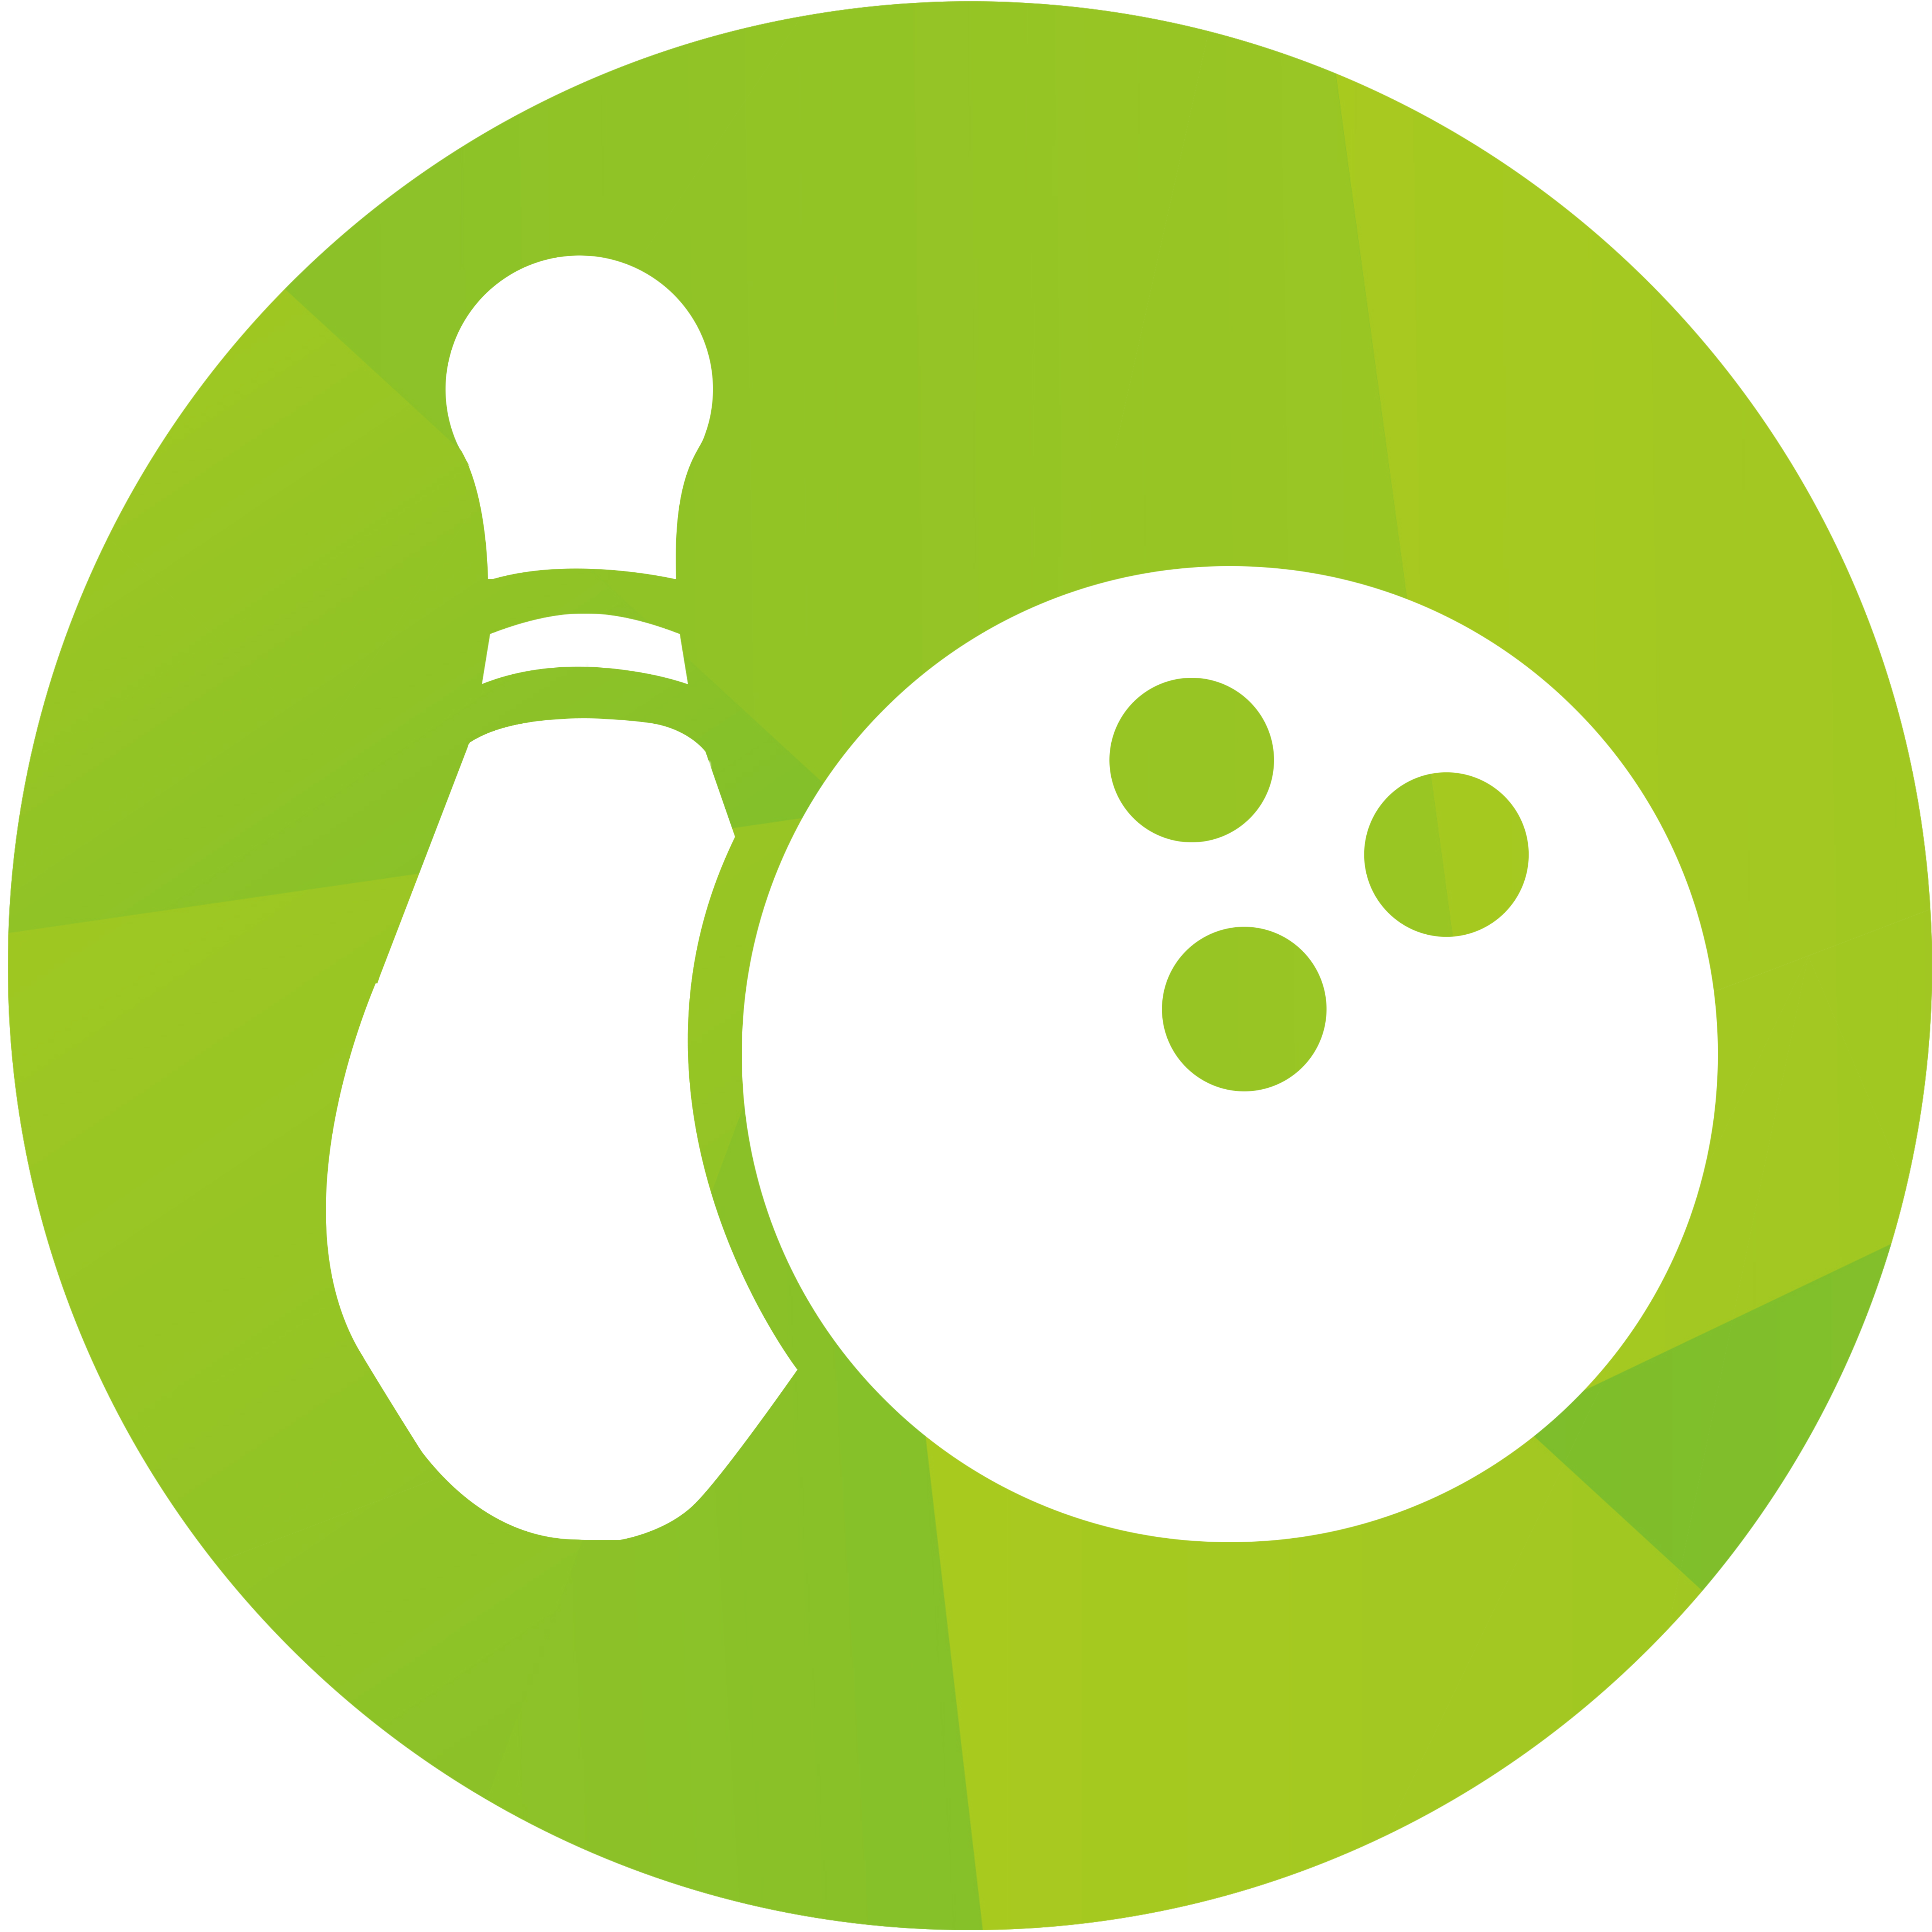 Floor clipart bowling alley. The sims stuff ideas